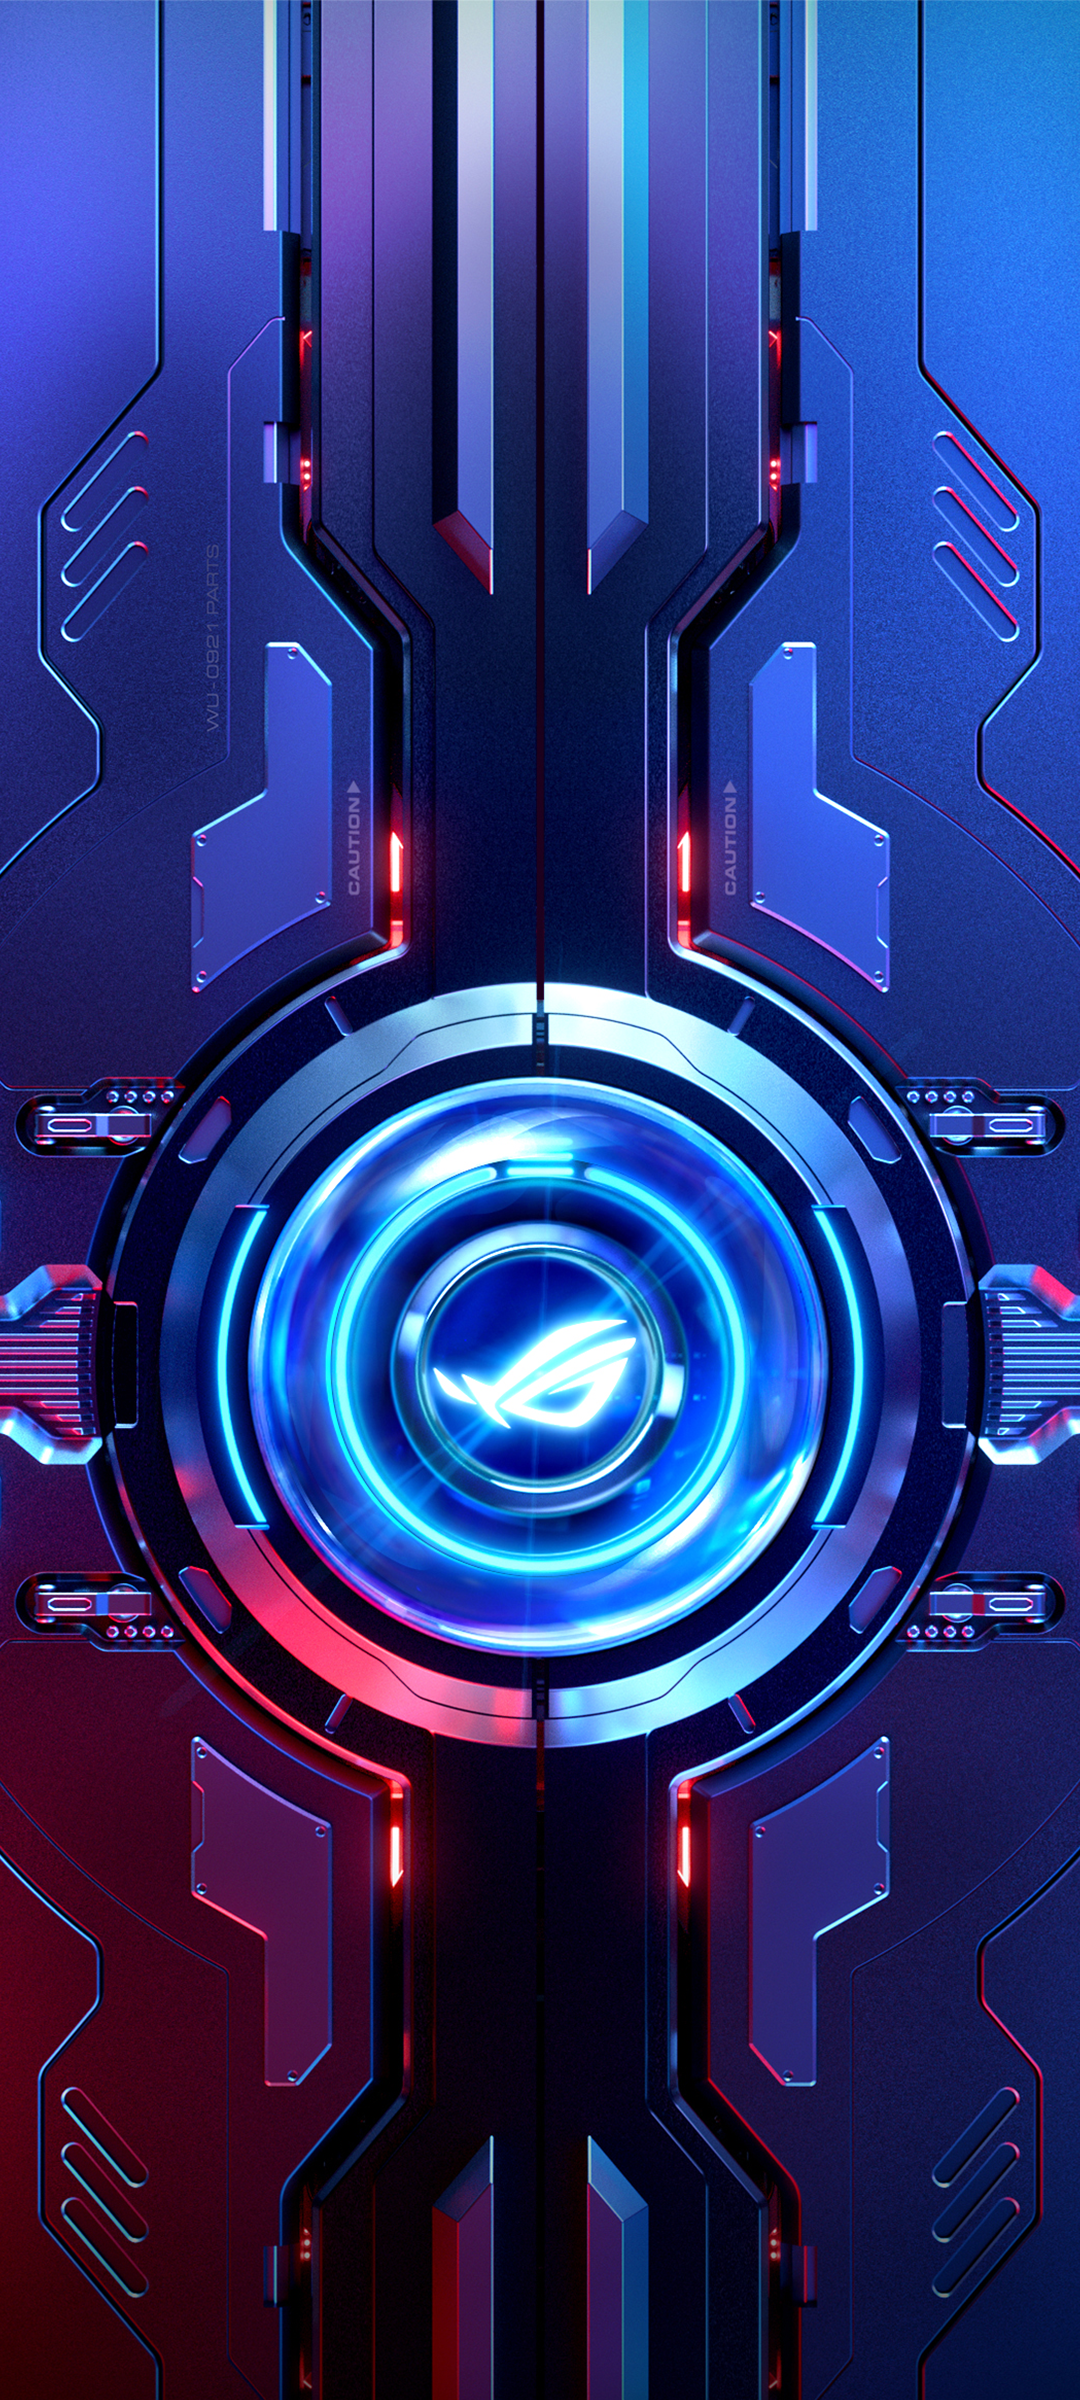 Asus Rog Phone 3 Wallpaper Ytechb Exclusive Hd Phone Wallpapers Huawei Wallpapers Technology Wallpaper